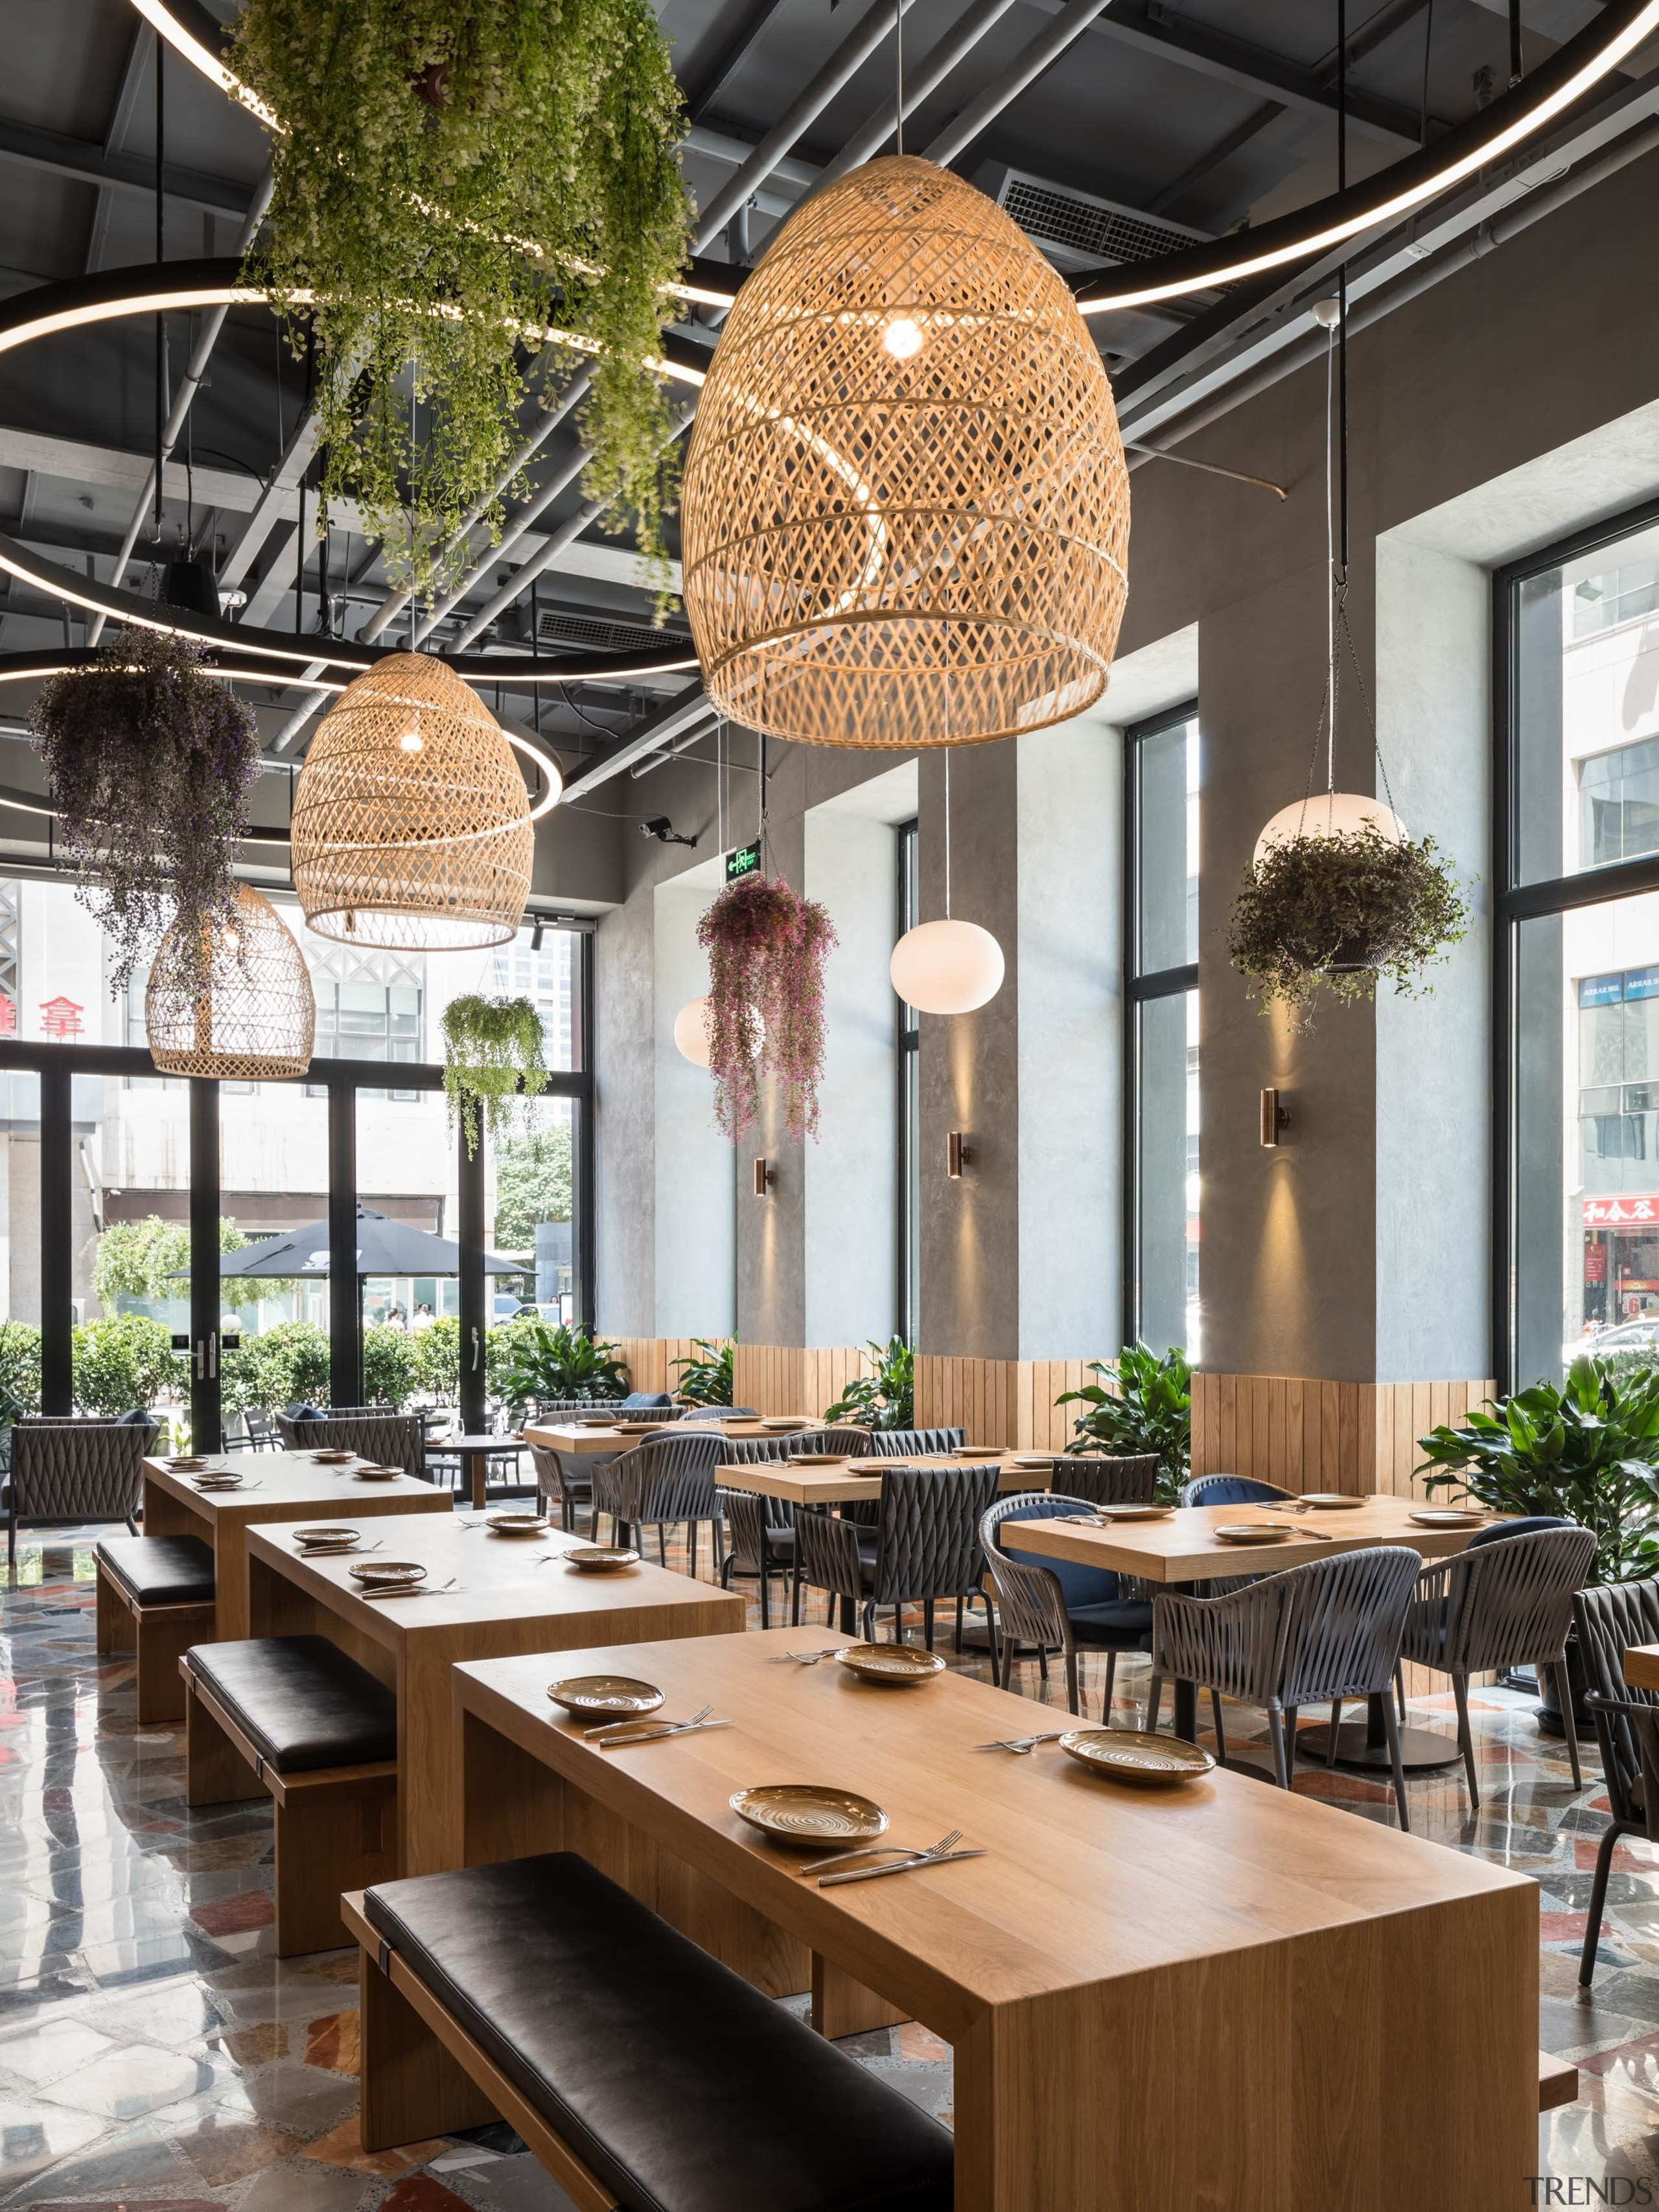 Natural materials, including hanging plants, and natural light architecture, building, ceiling, design, dining room, furniture, home, house, interior design, kitchen & dining room table, light fixture, lighting, lobby, loft, real estate, restaurant, room, table, black